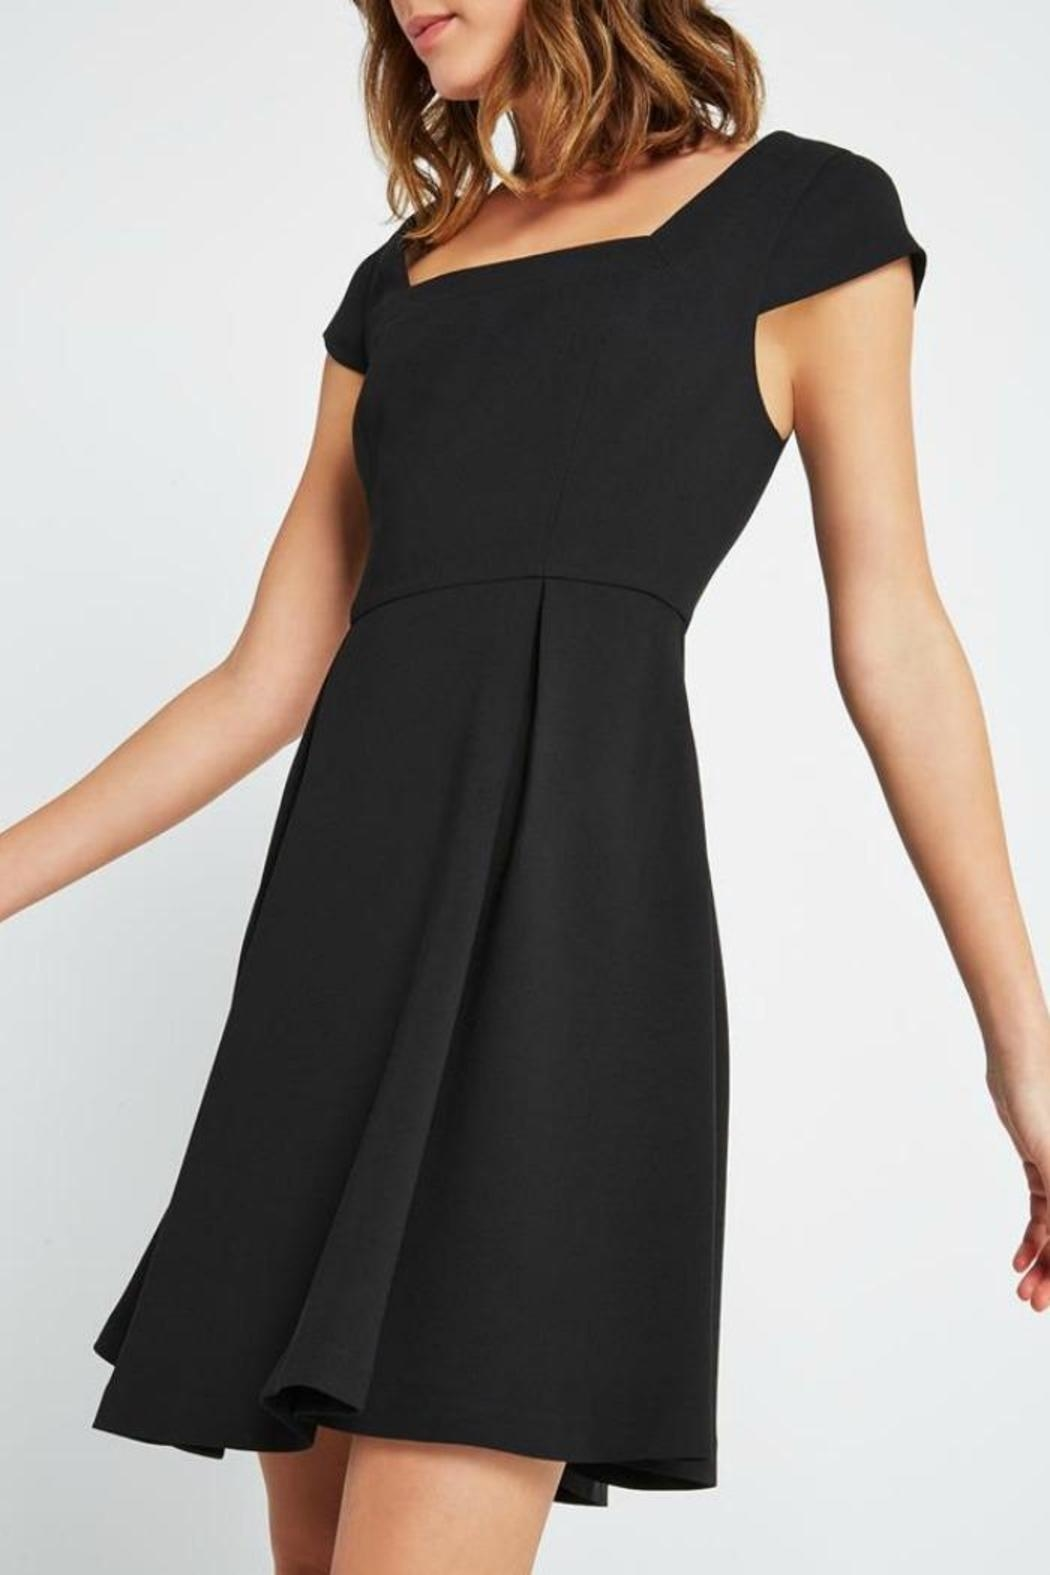 BCBGeneration Classic Black Dress - Front Cropped Image